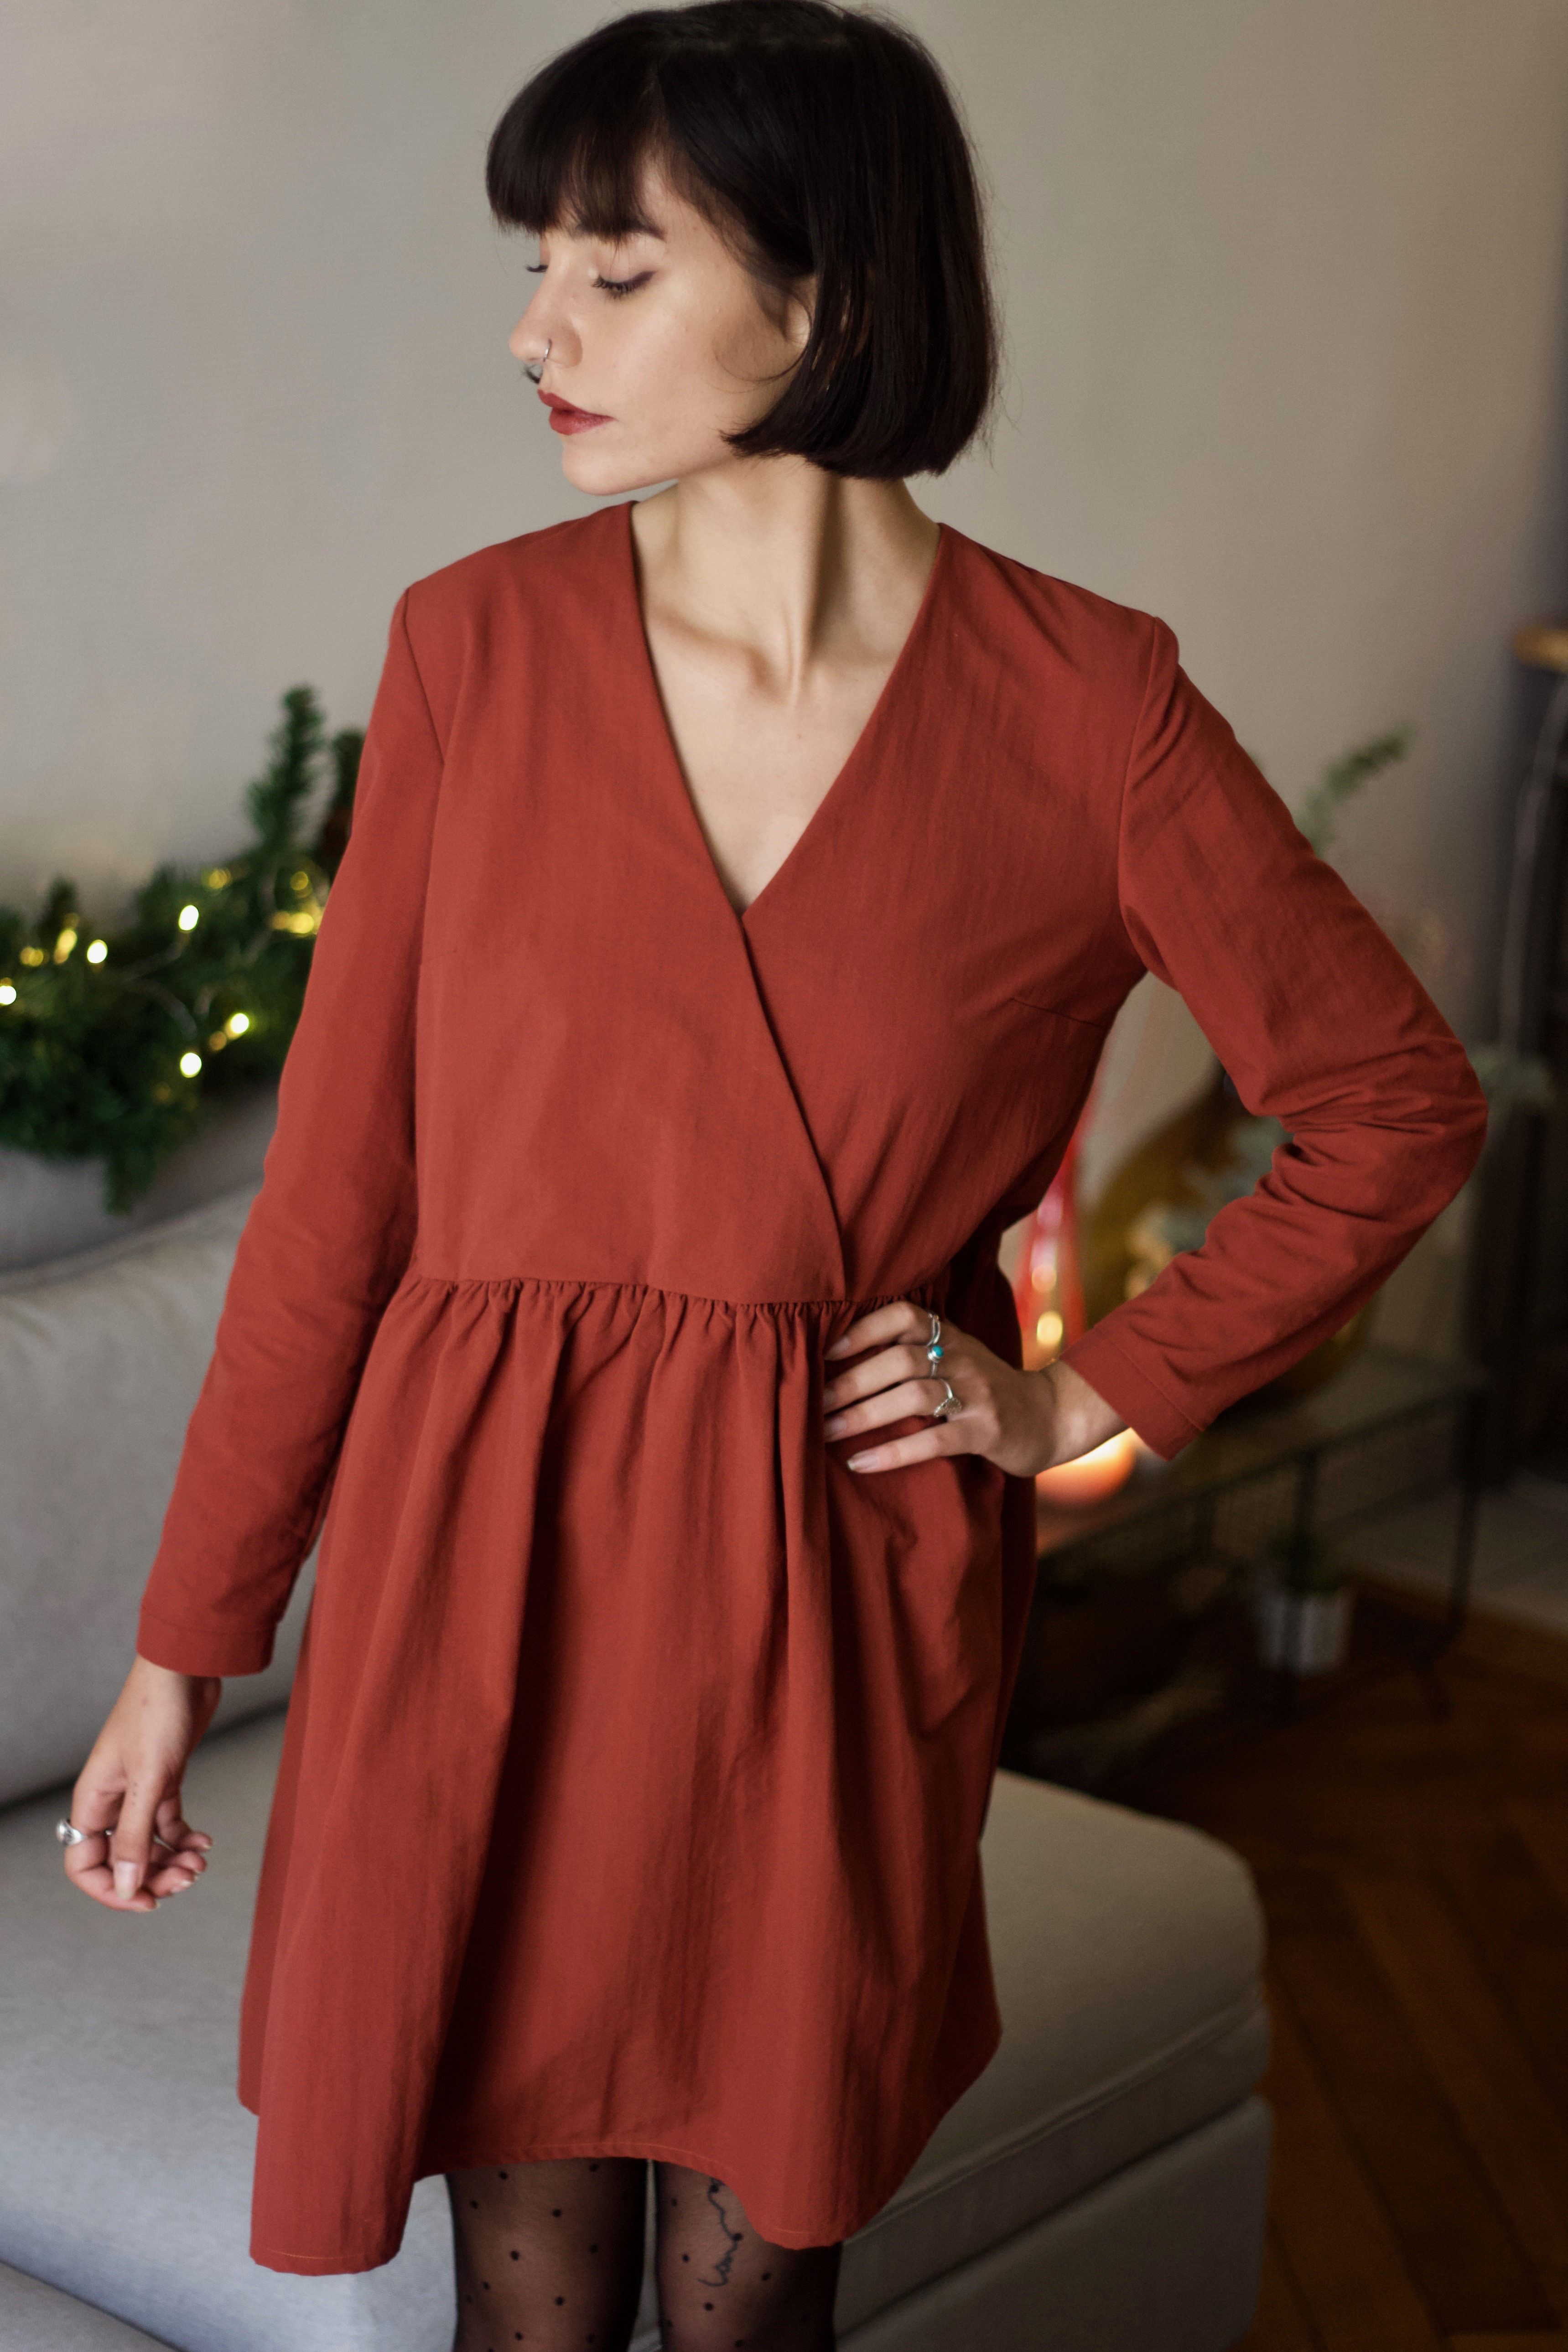 Robe Faustine - Coton/Polyester upcyclés